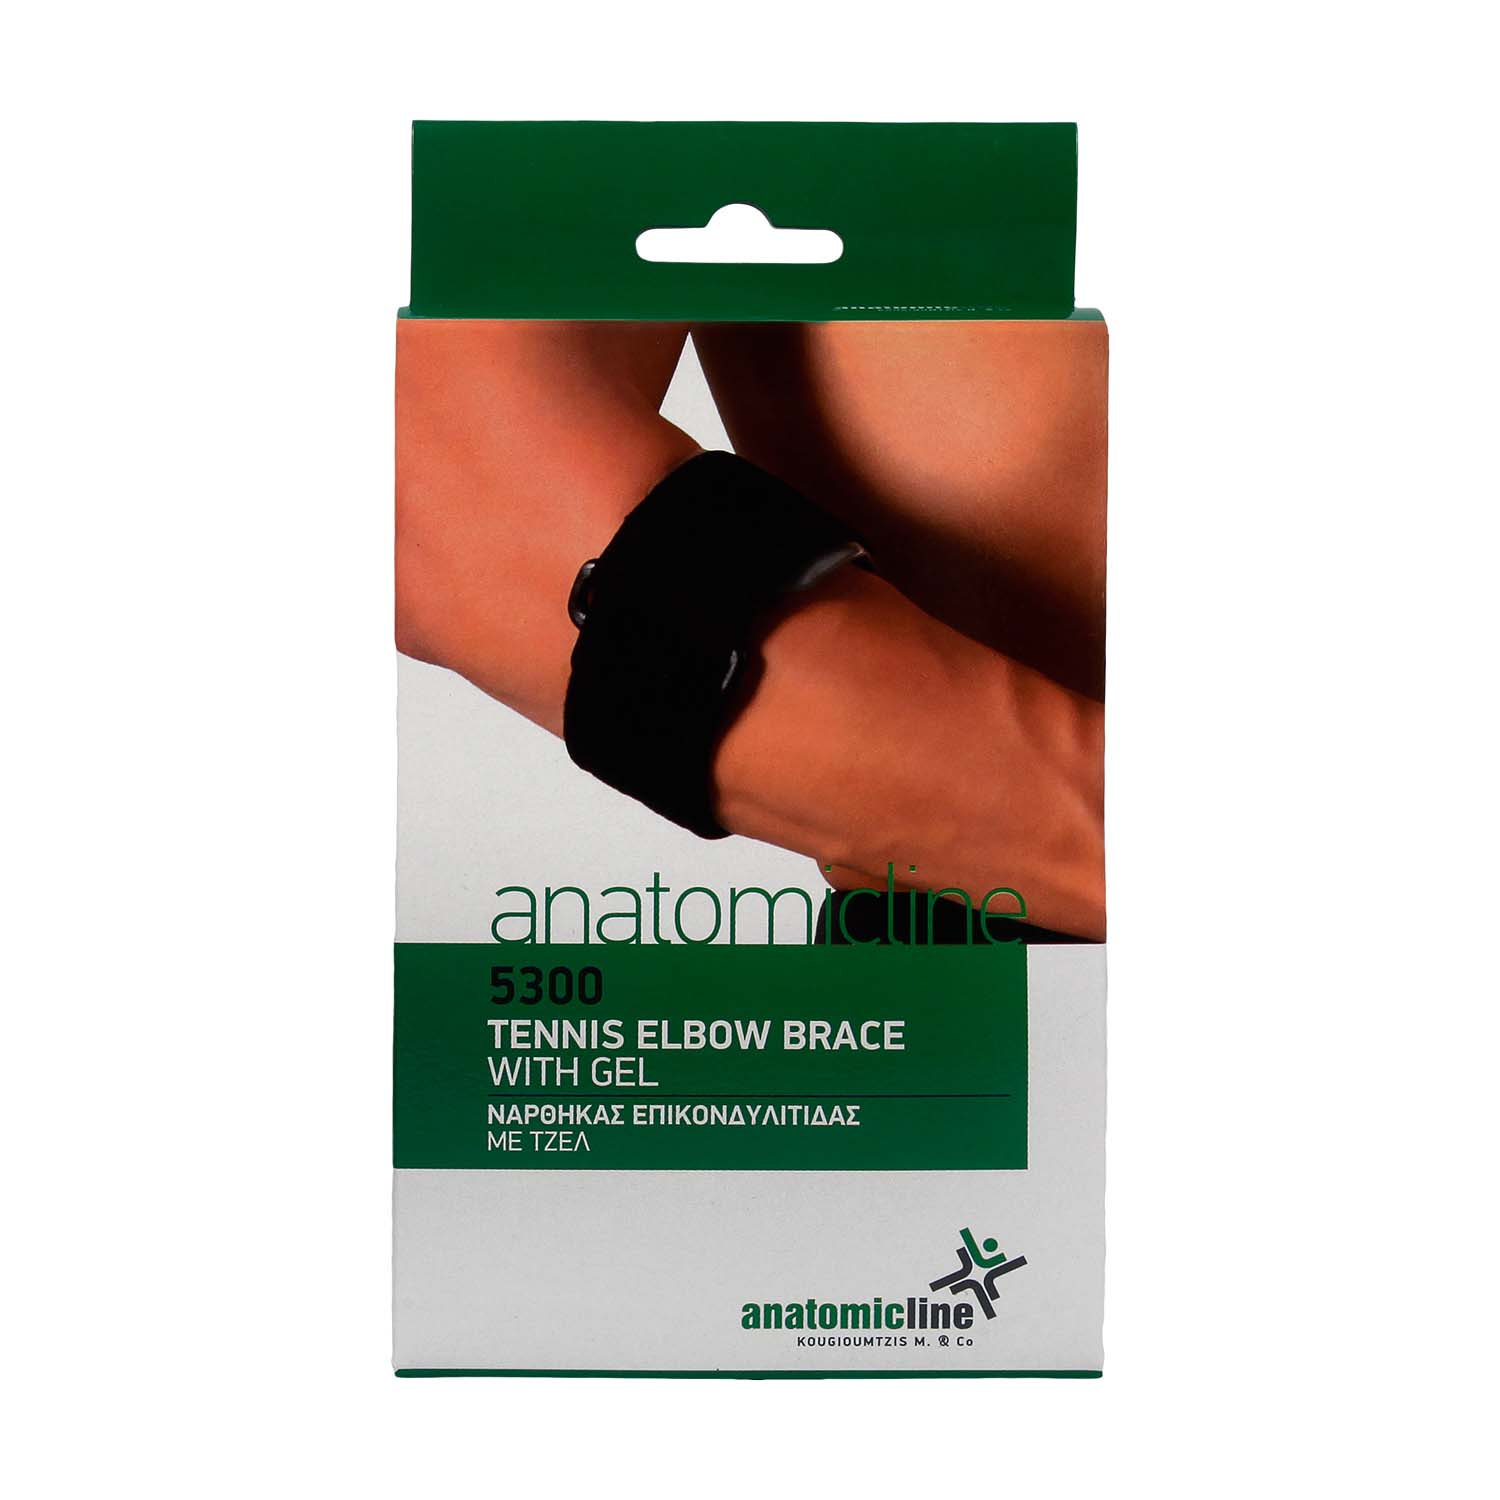 Tennis Elbow brace with gel